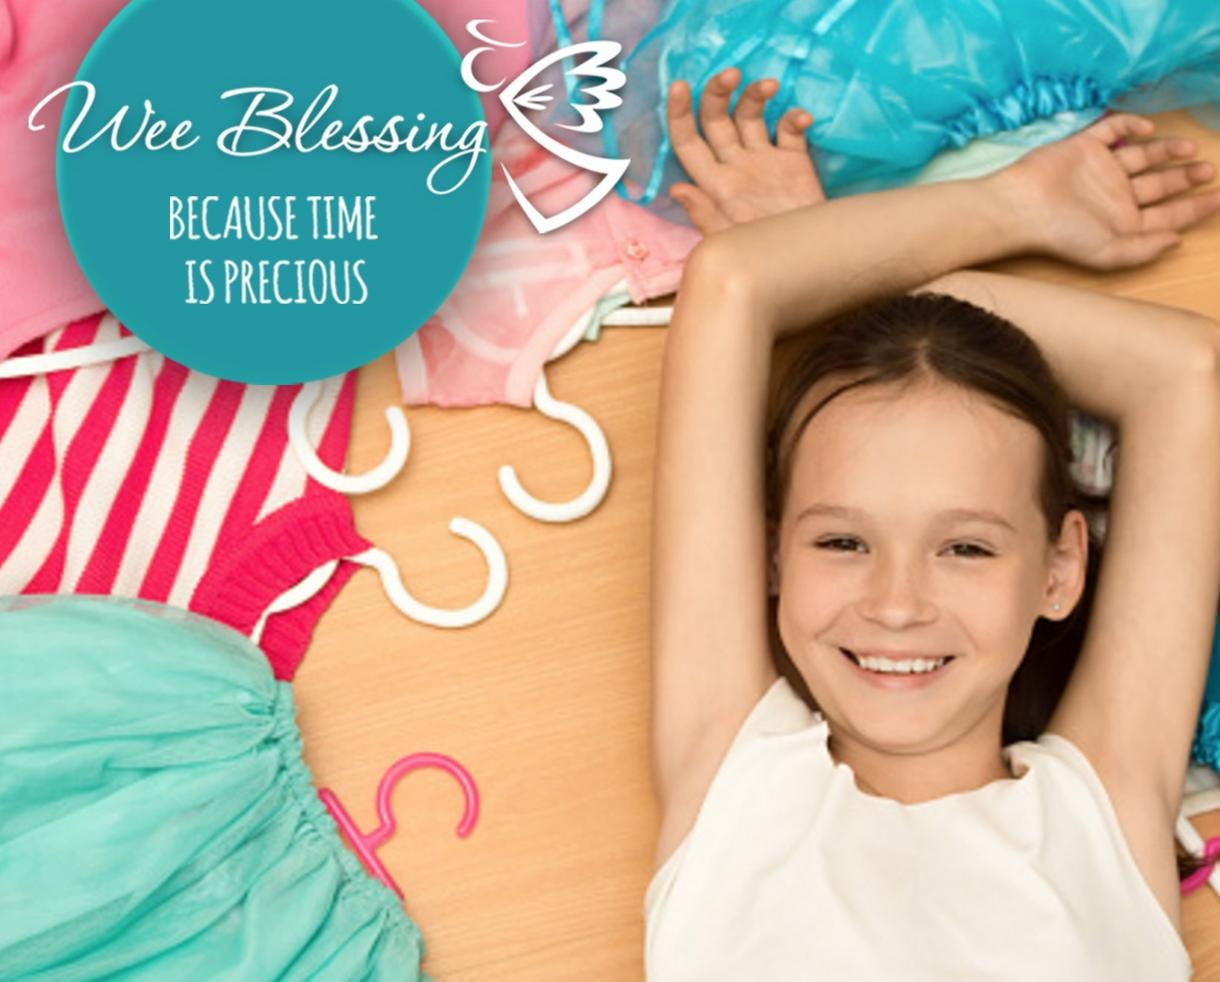 Get a FREE Outfit from Wee Blessing: Top Brand Name Children Fashions Delivered to Your Door (up to $60 Value)